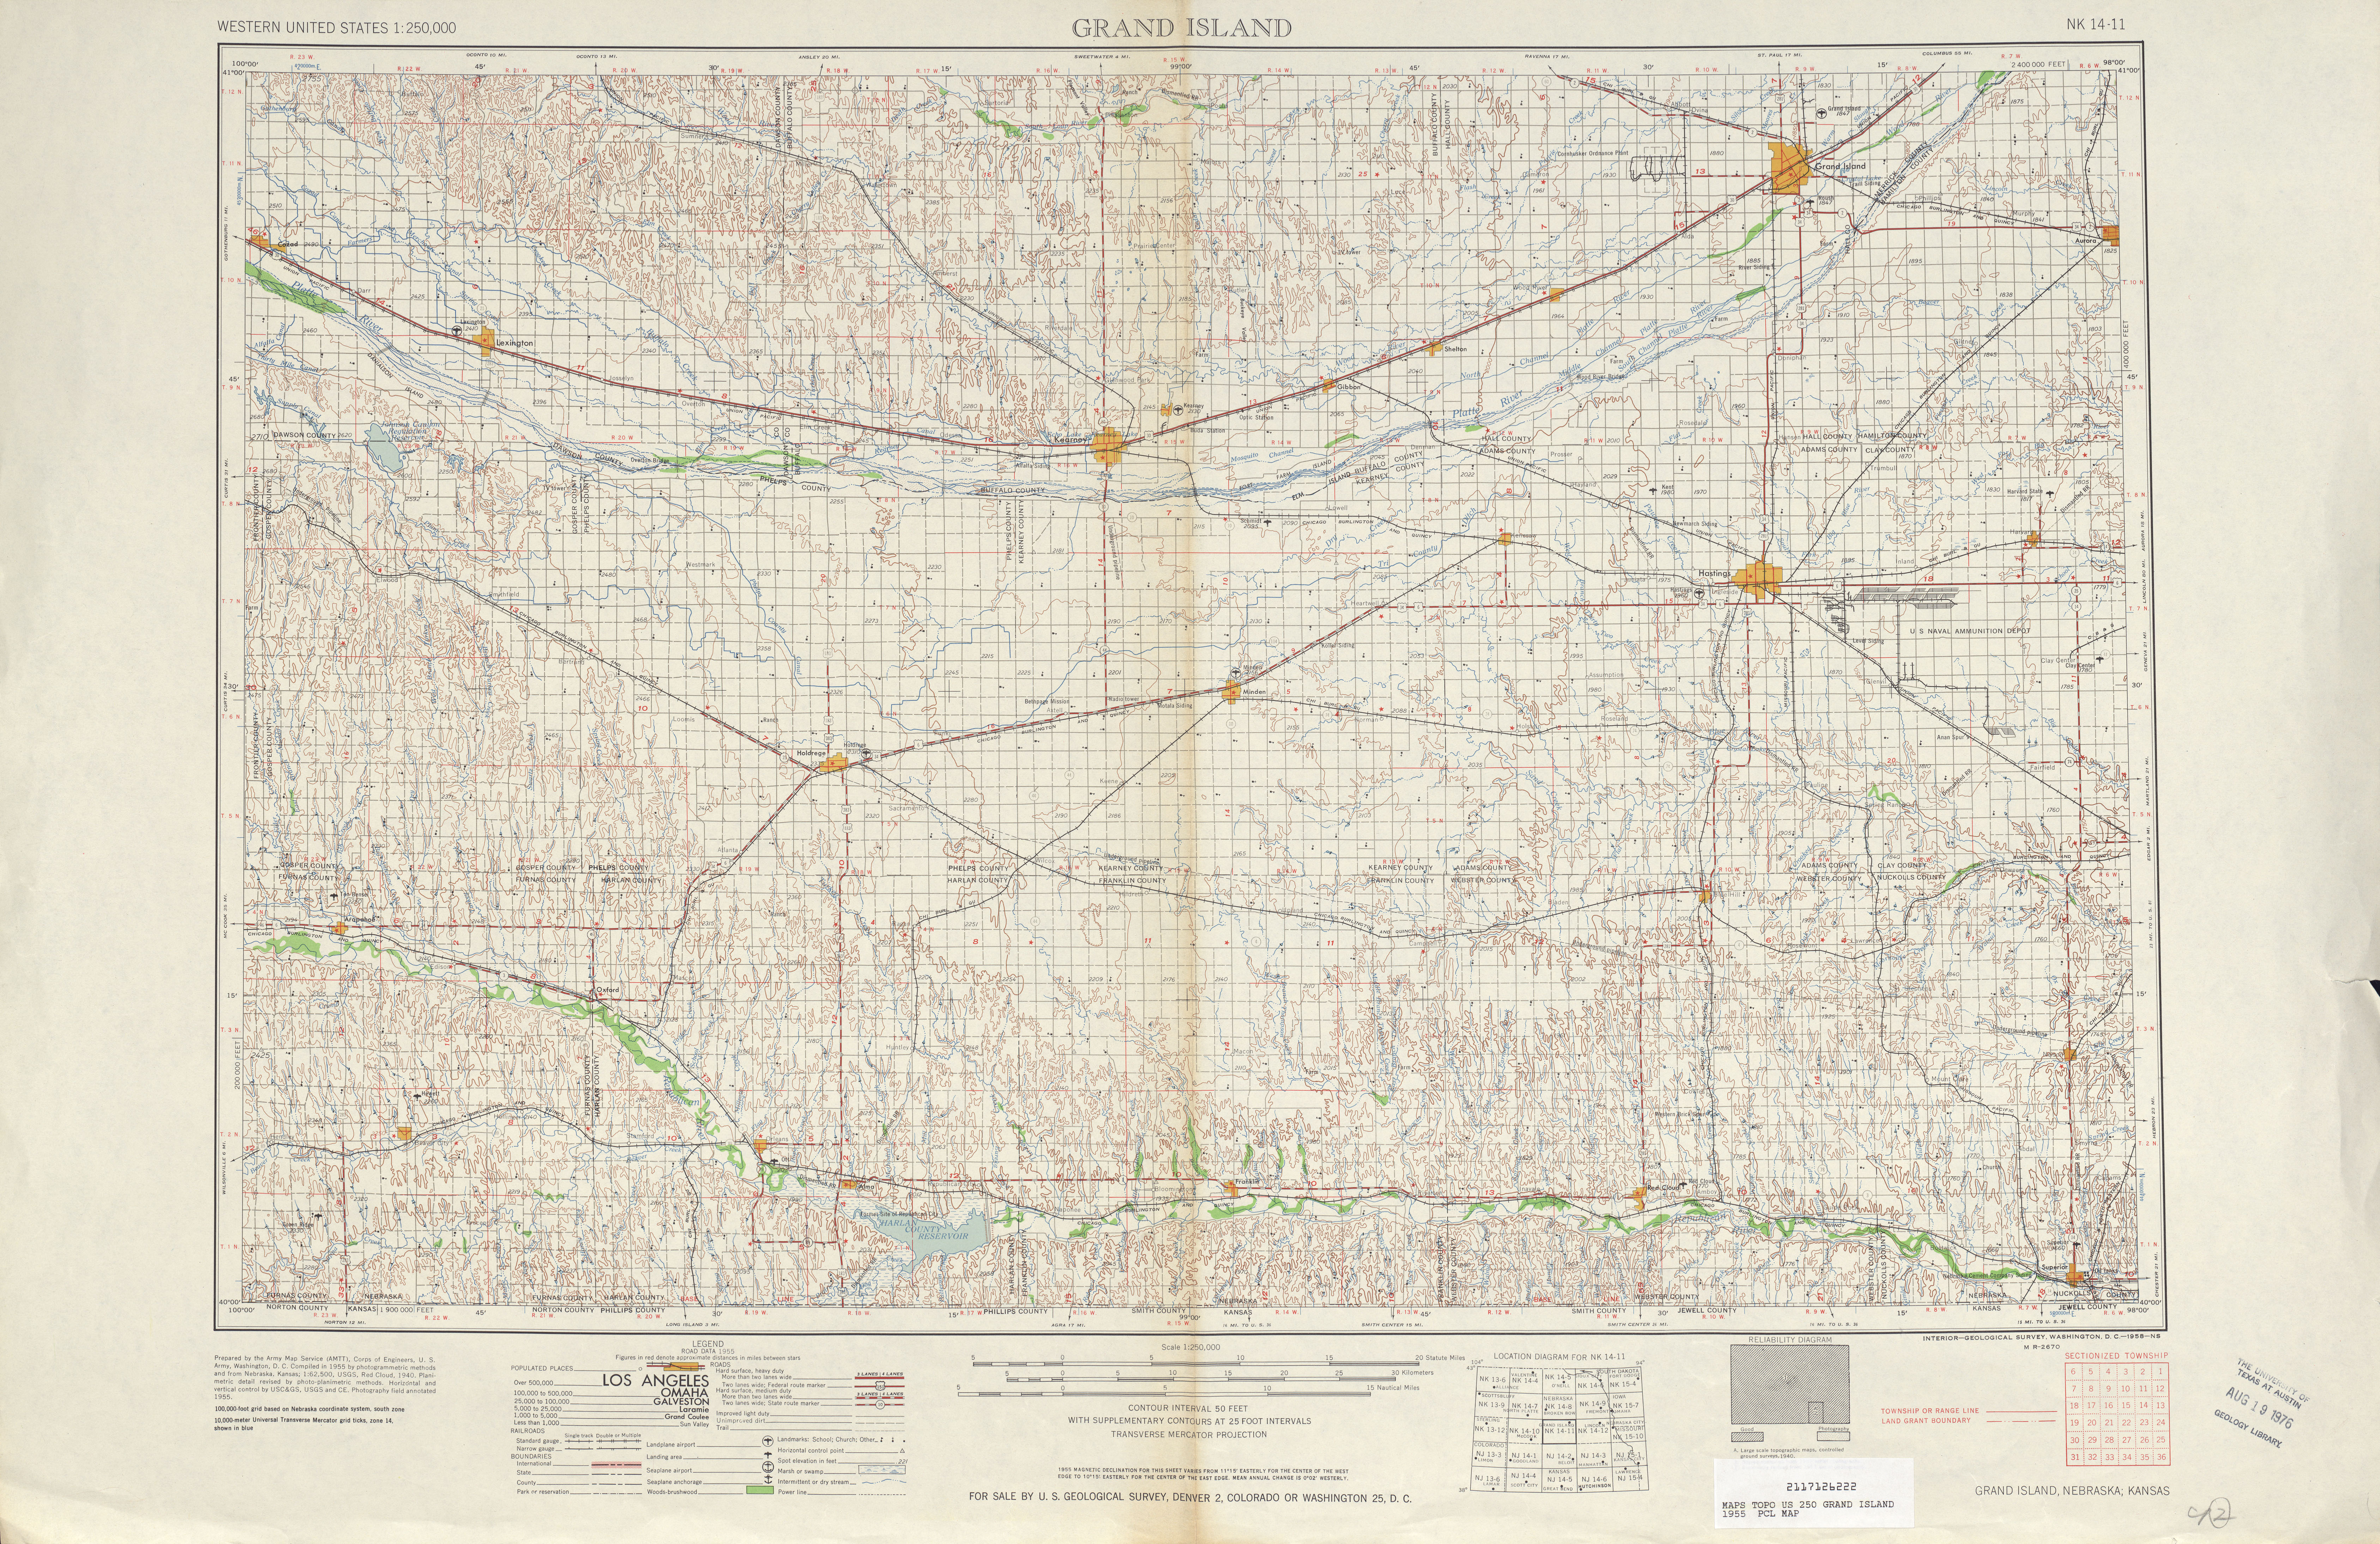 Grand Island Topographic Map Sheet, United States 1955